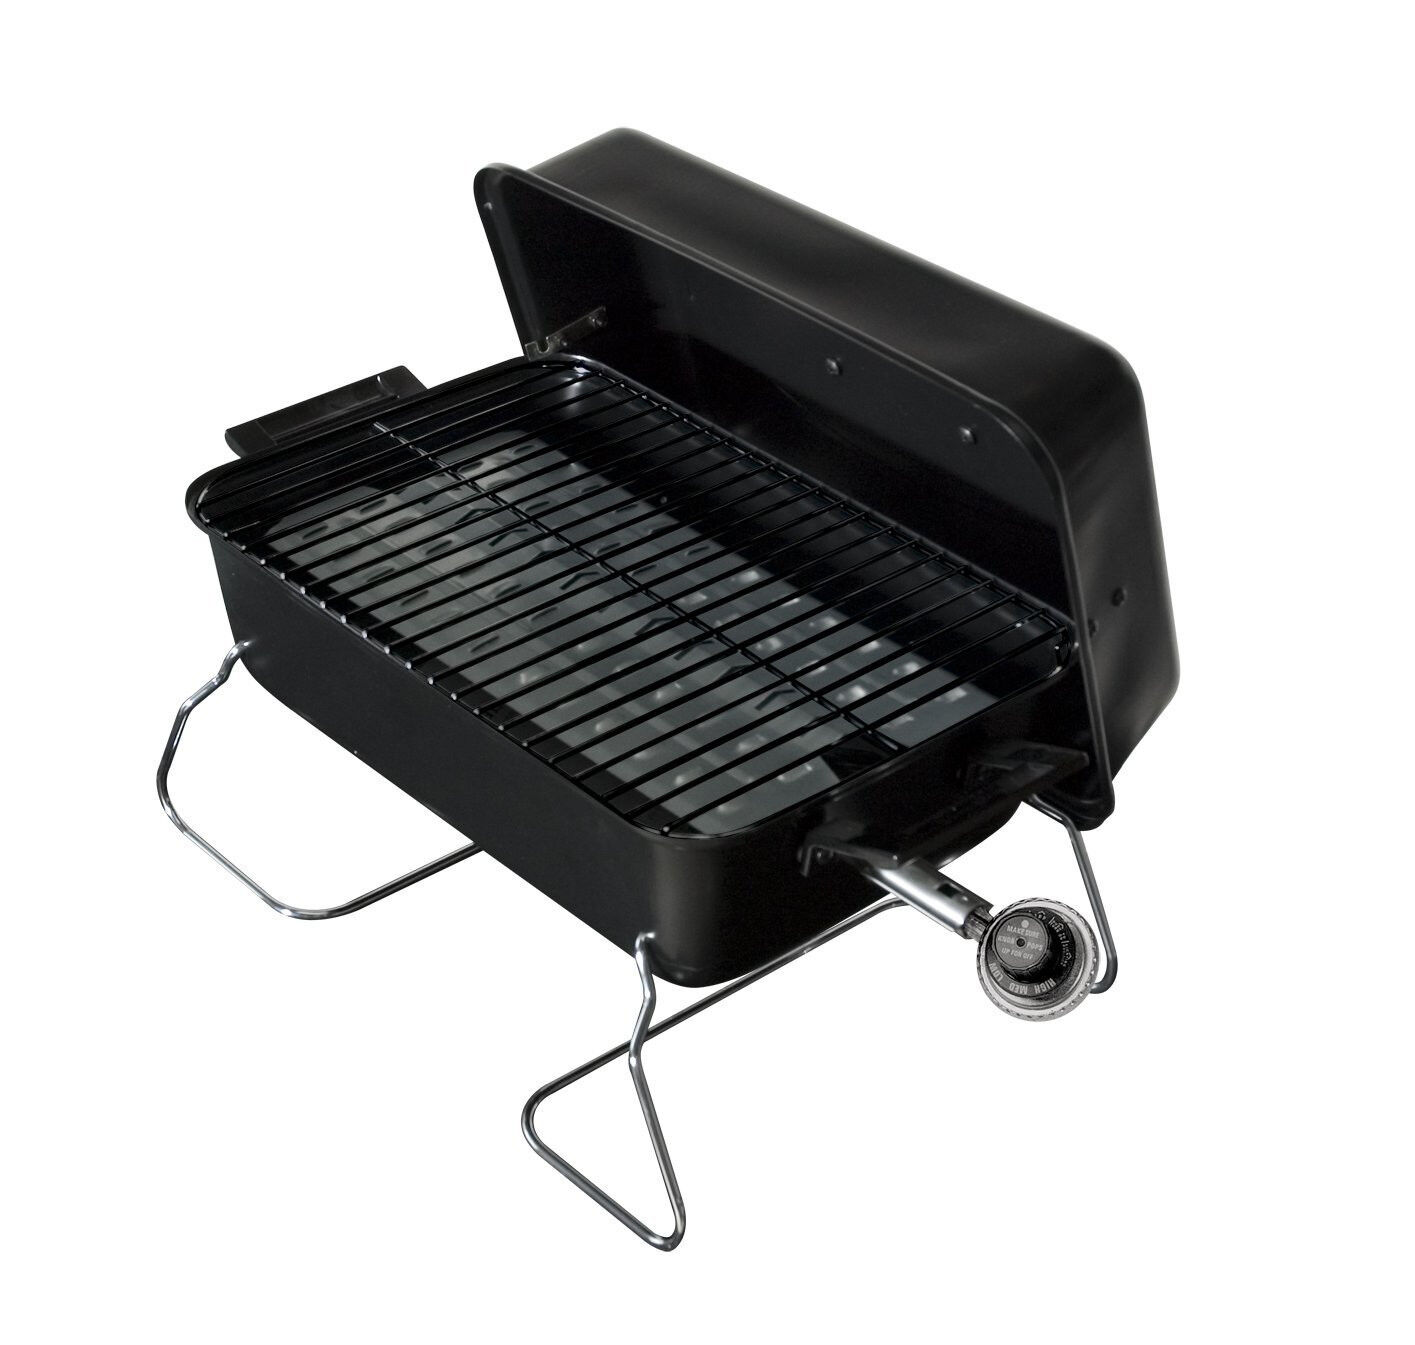 Grill Camping New Tabletop Gas Grill Portable Propane Barbecue Bbq